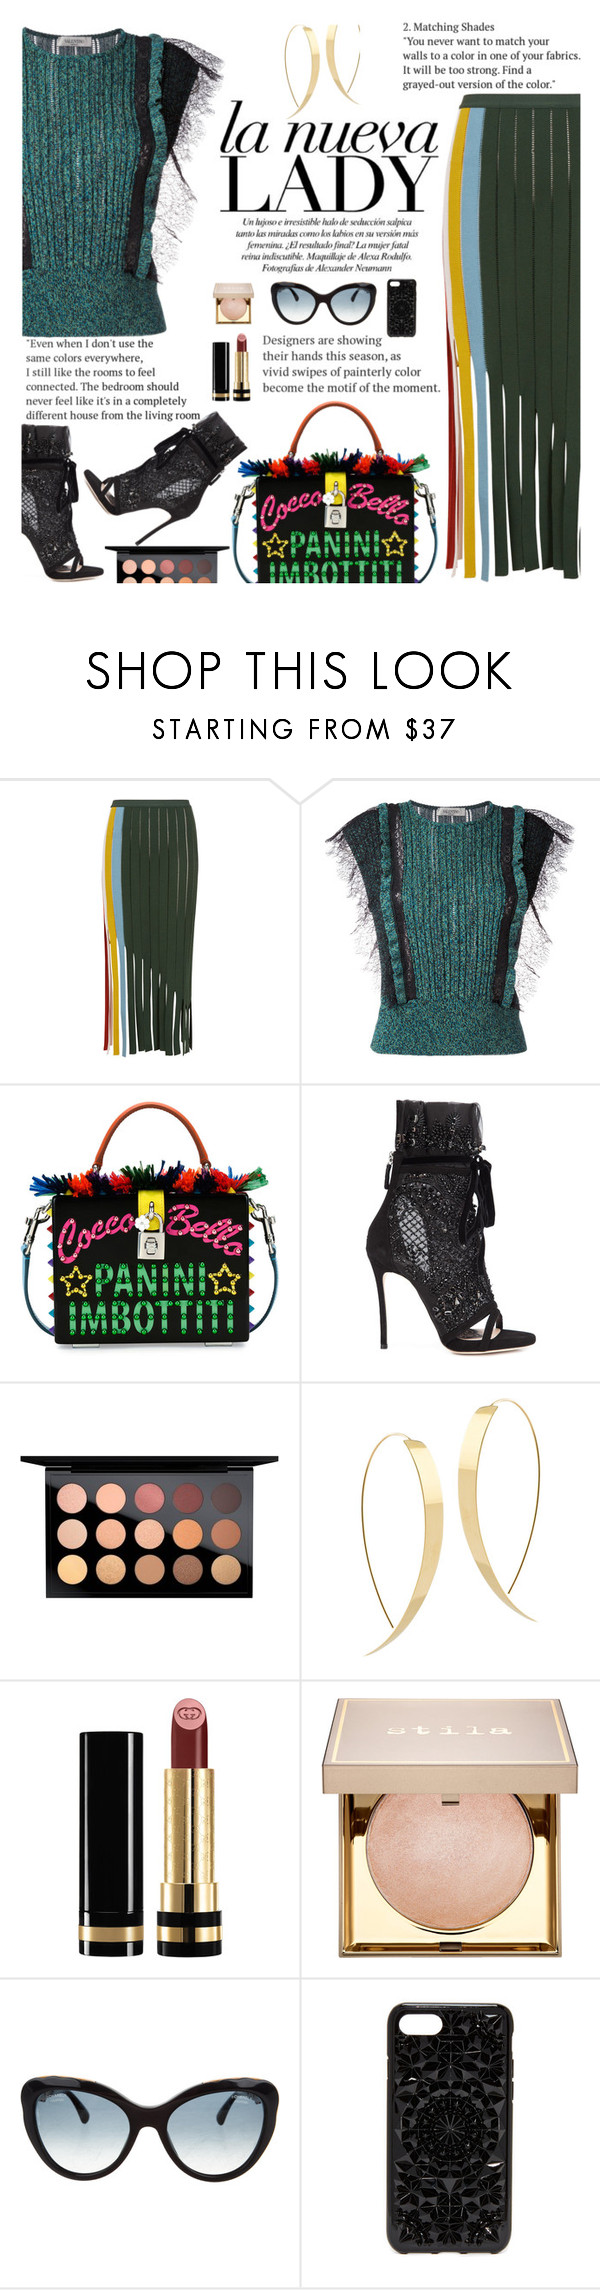 """Untitled #2294"" by anarita11 ❤ liked on Polyvore featuring Marco de Vincenzo, Valentino, Dolce&Gabbana, Dsquared2, MAC Cosmetics, Lana, Gucci, Stila, Chanel and Felony Case"